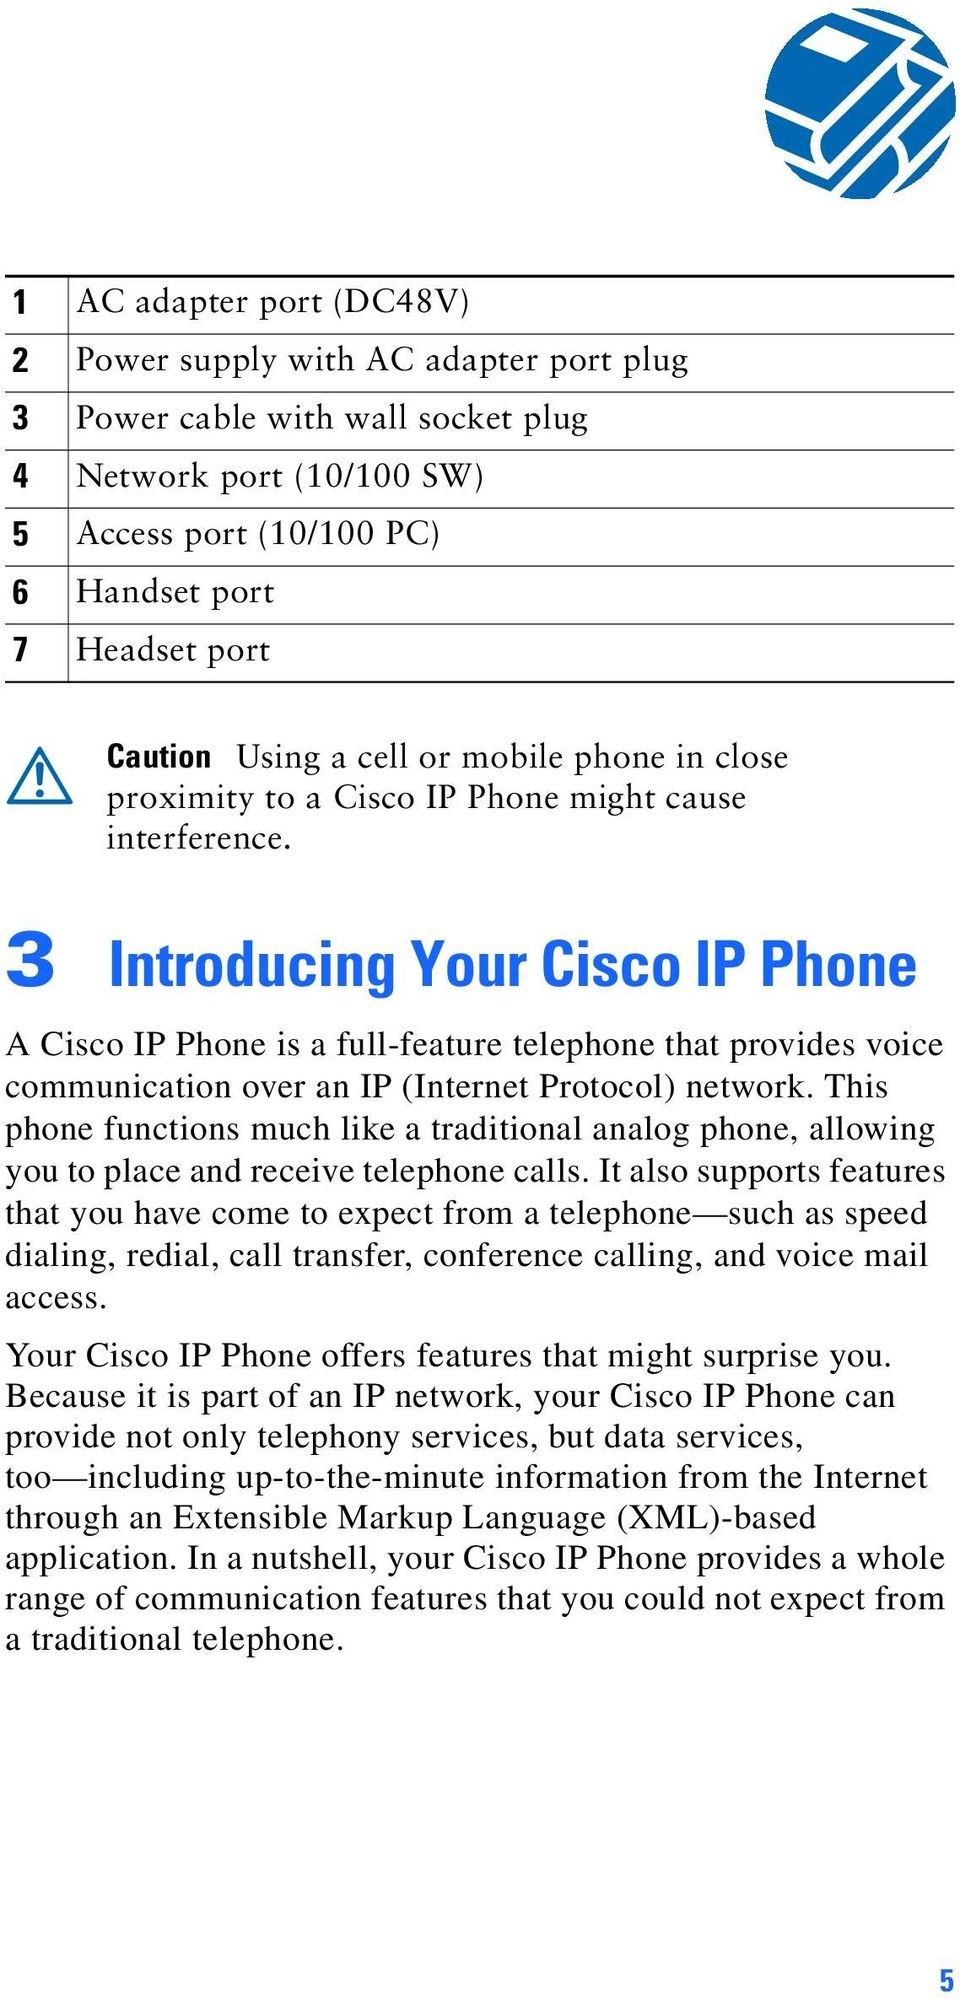 3 Introducing Your Cisco IP Phone A Cisco IP Phone is a full-feature telephone that provides voice communication over an IP (Internet Protocol) network.